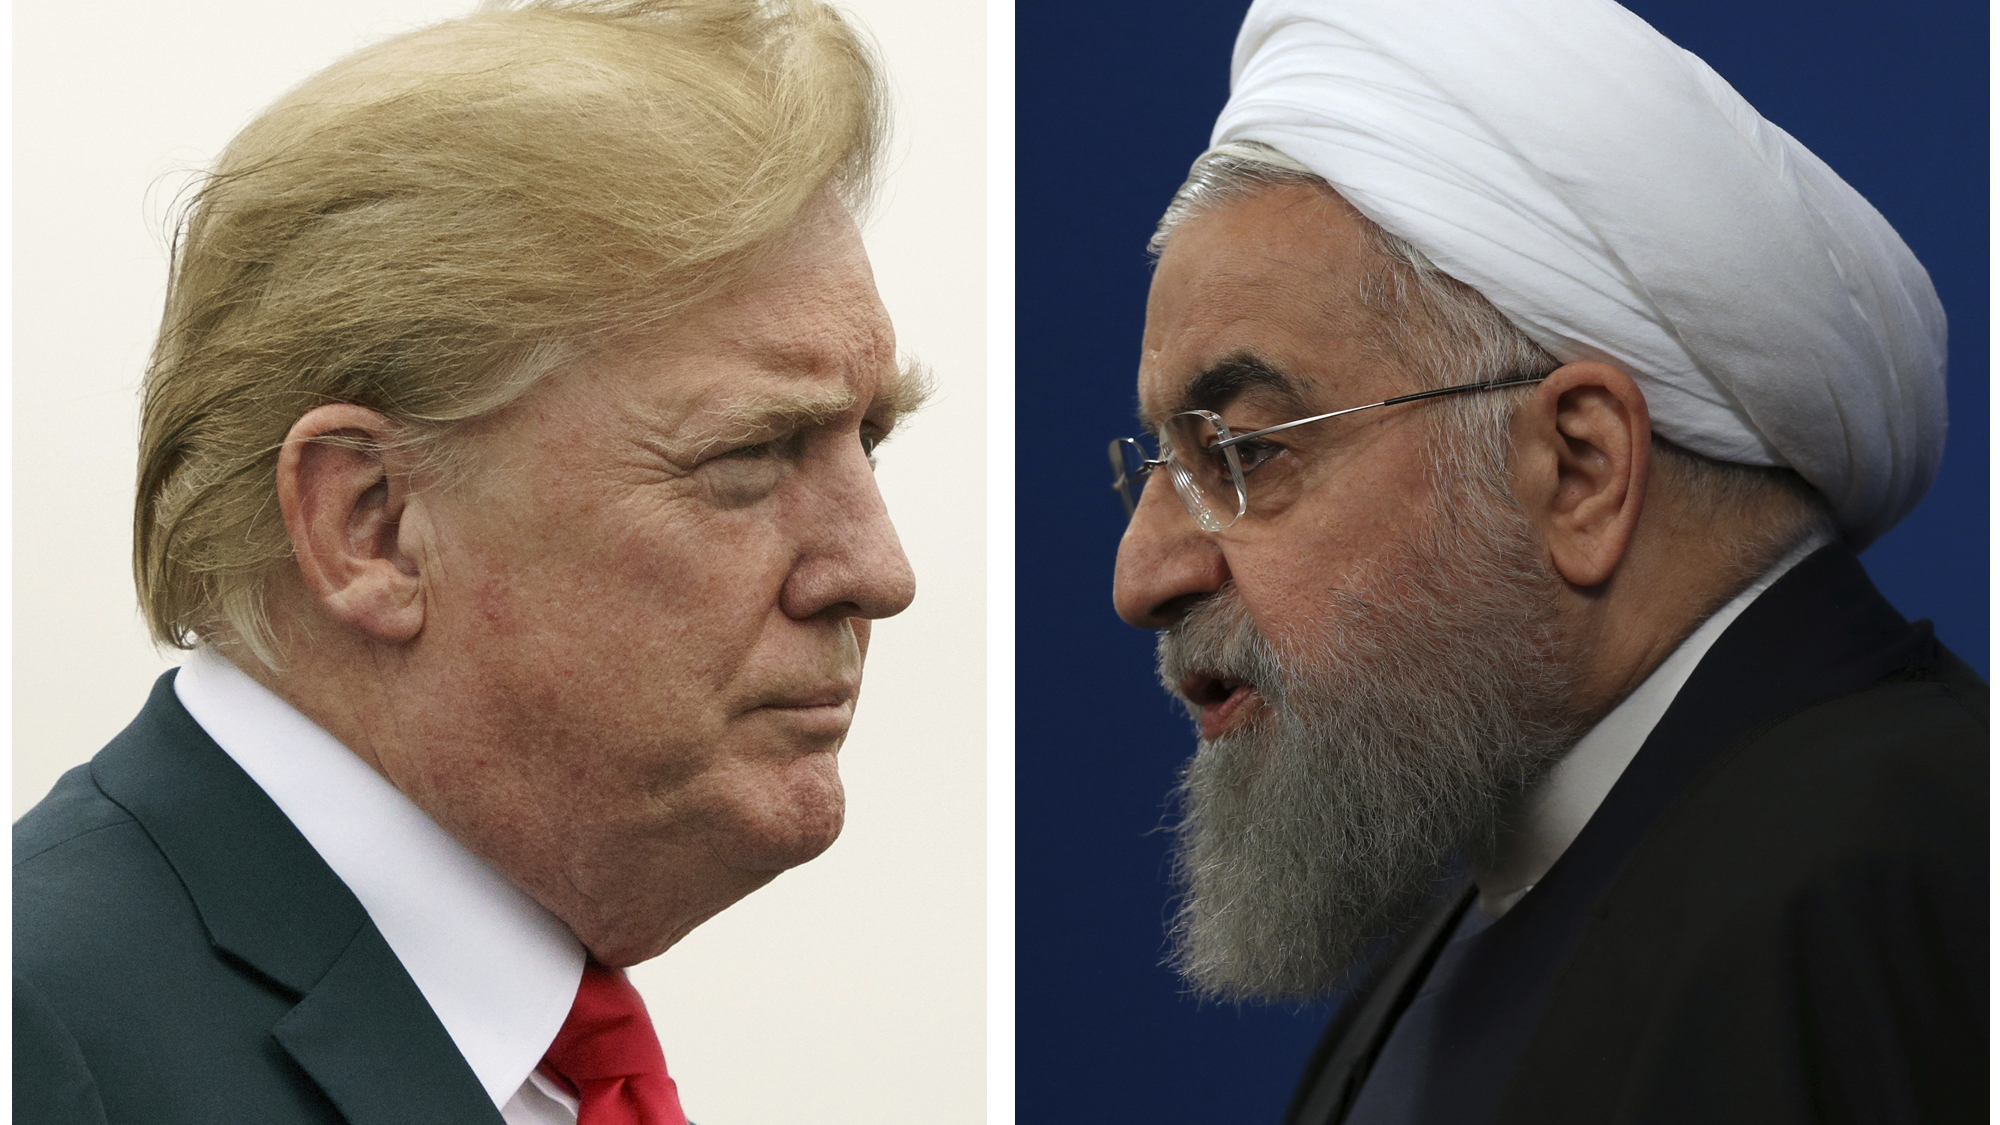 Trump warns Iran of dire 'consequences' as war of words escalates